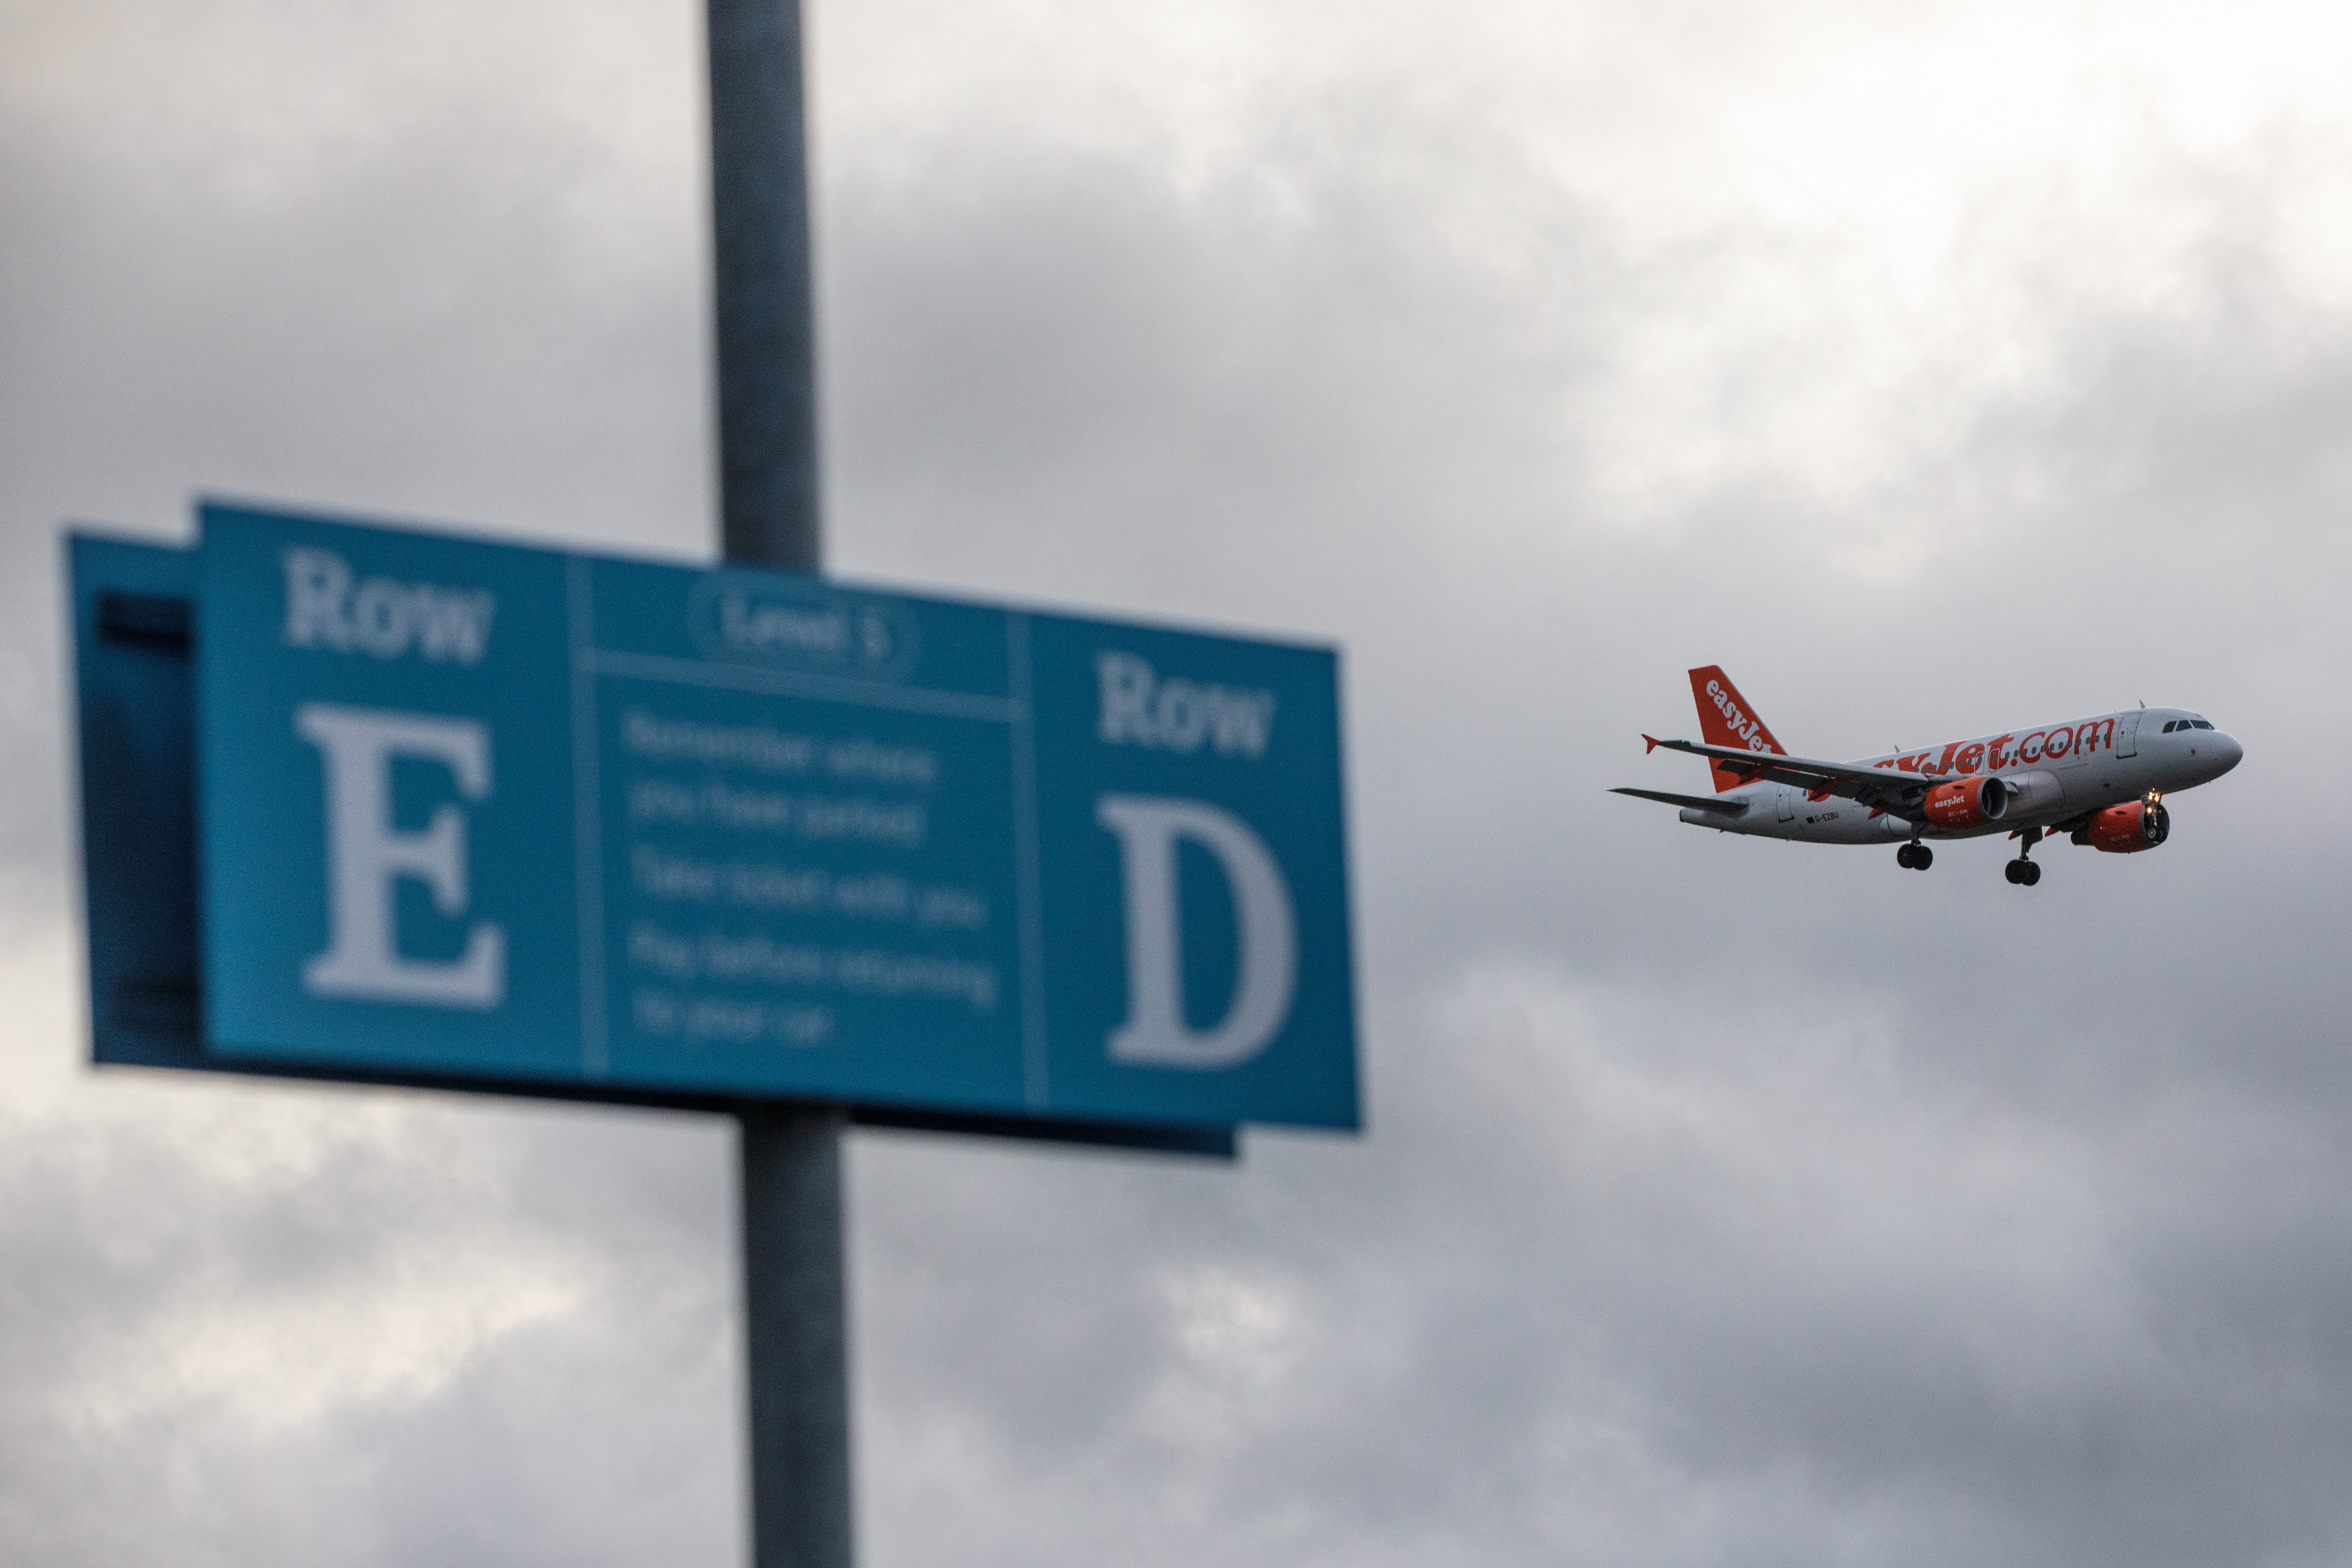 An aircraft comes in to land at Gatwick Airport in London, England.